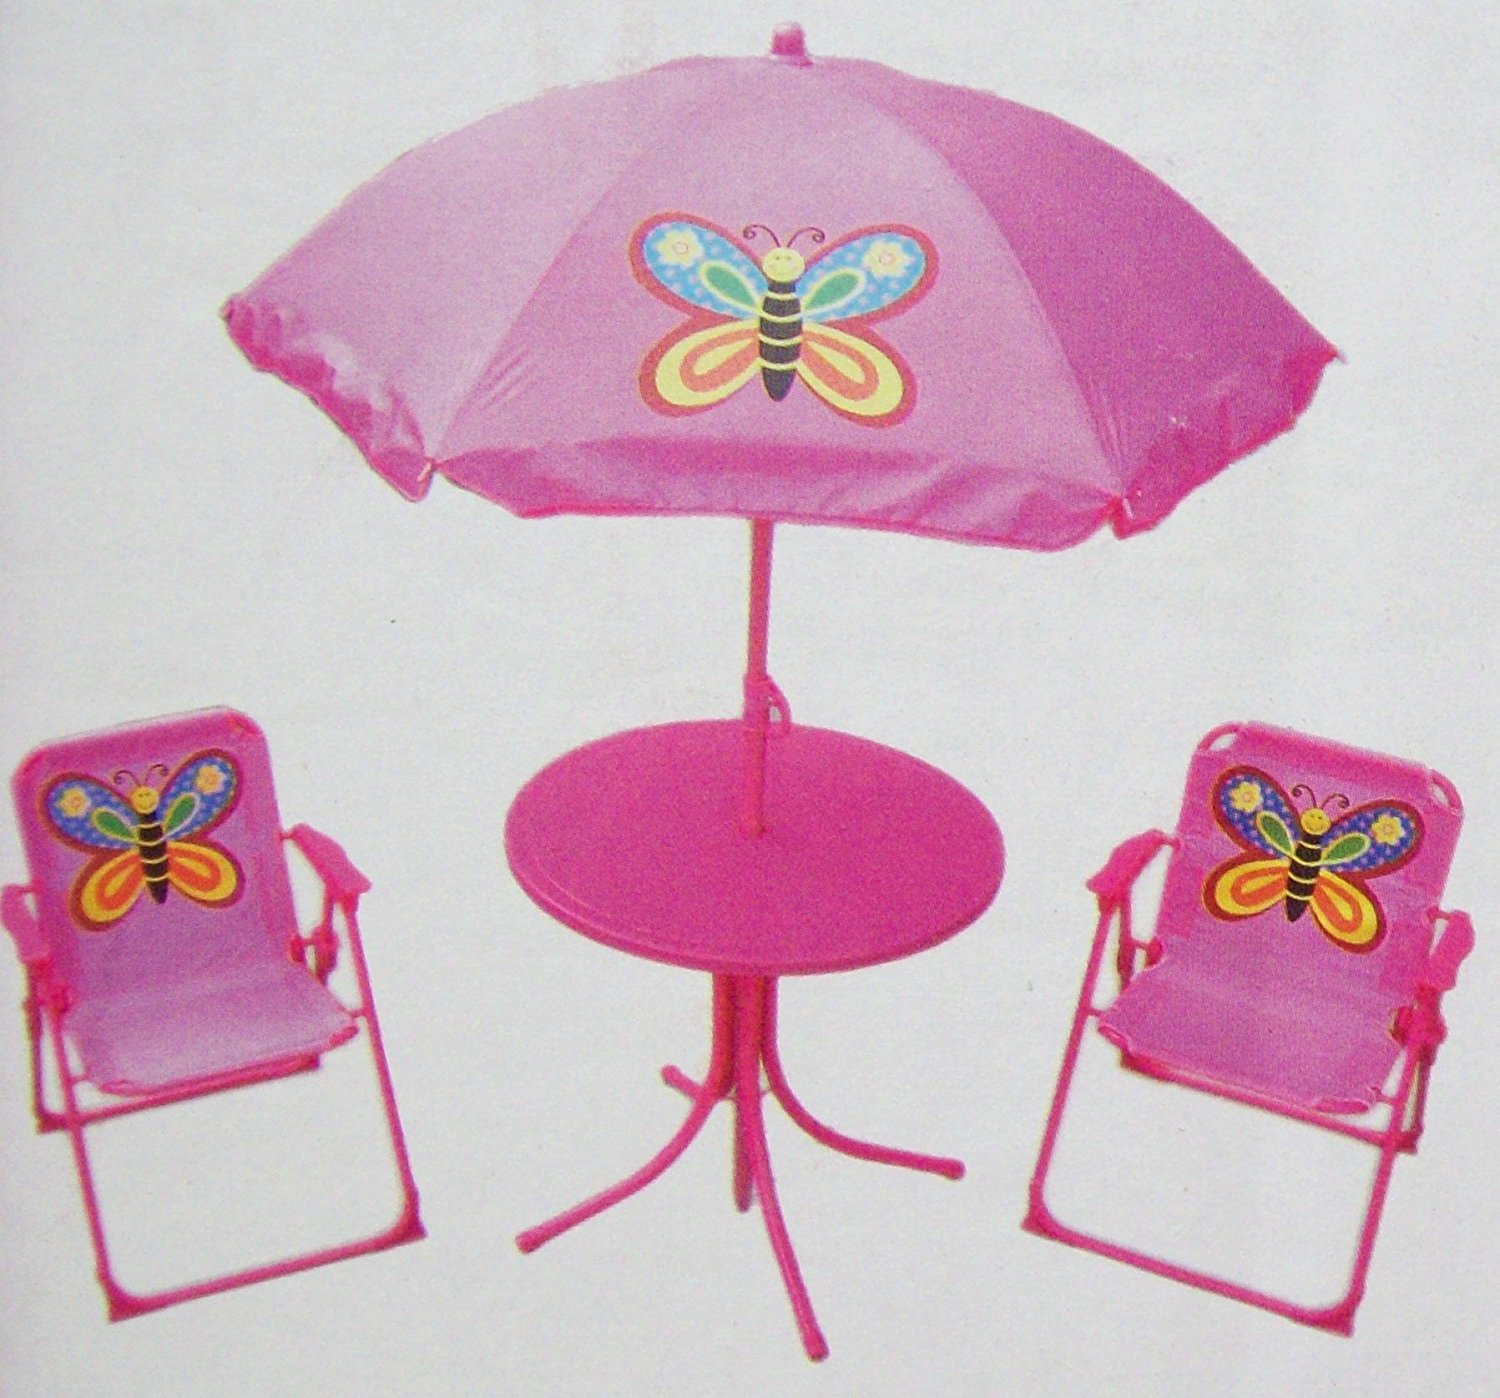 Childrens Garden Furniture Patio Set Table Chairs U0026 Parasol   Pink Butterfly